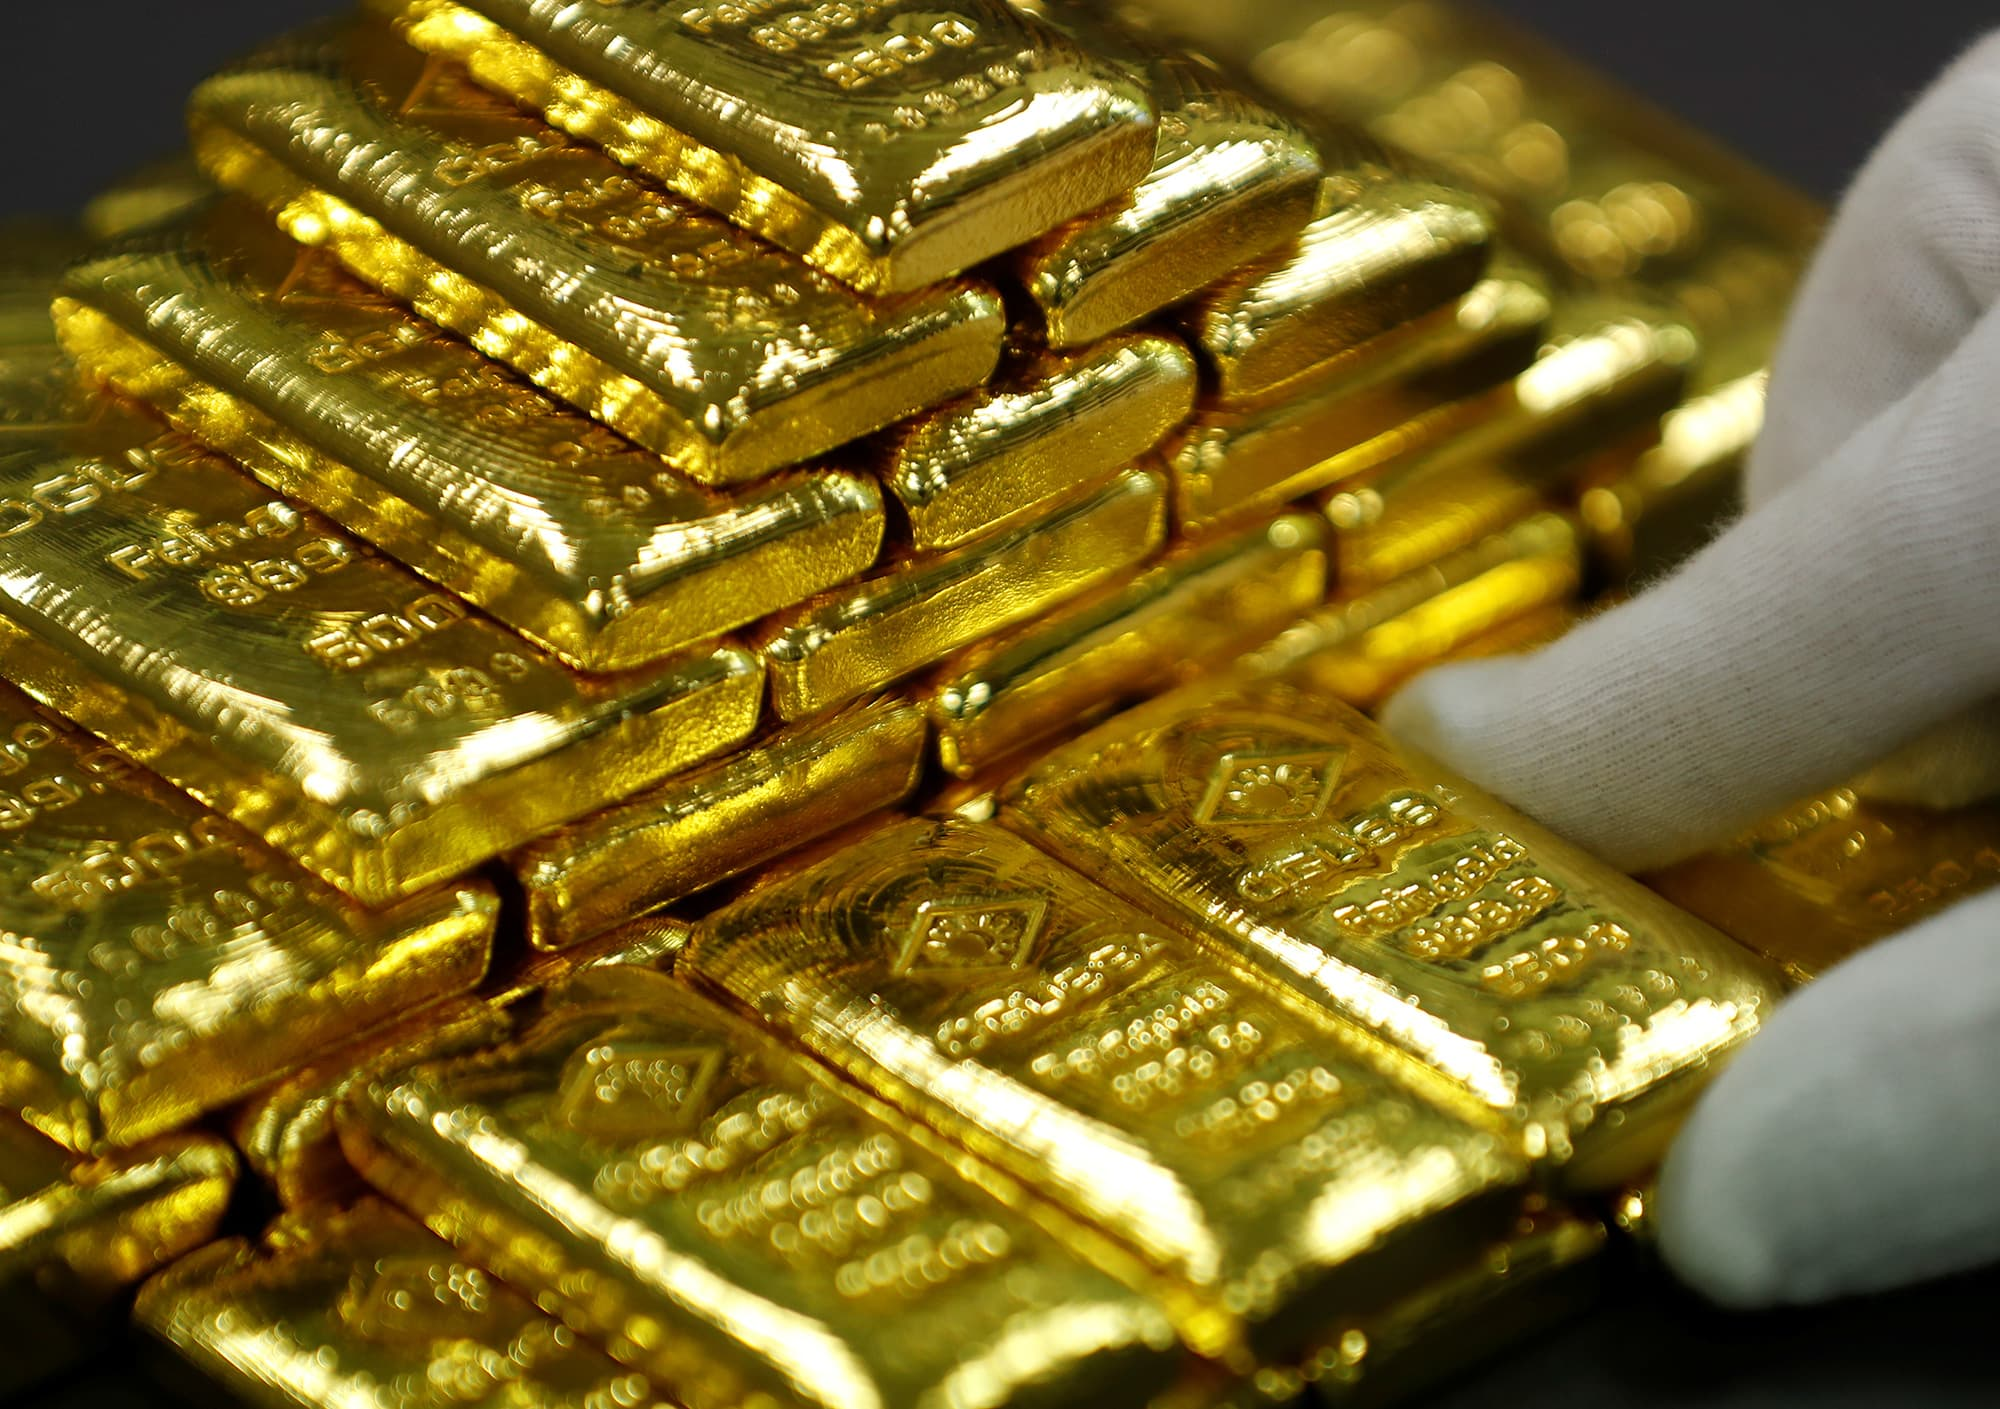 Gold, bond and consumer staples ETFs see huge inflows